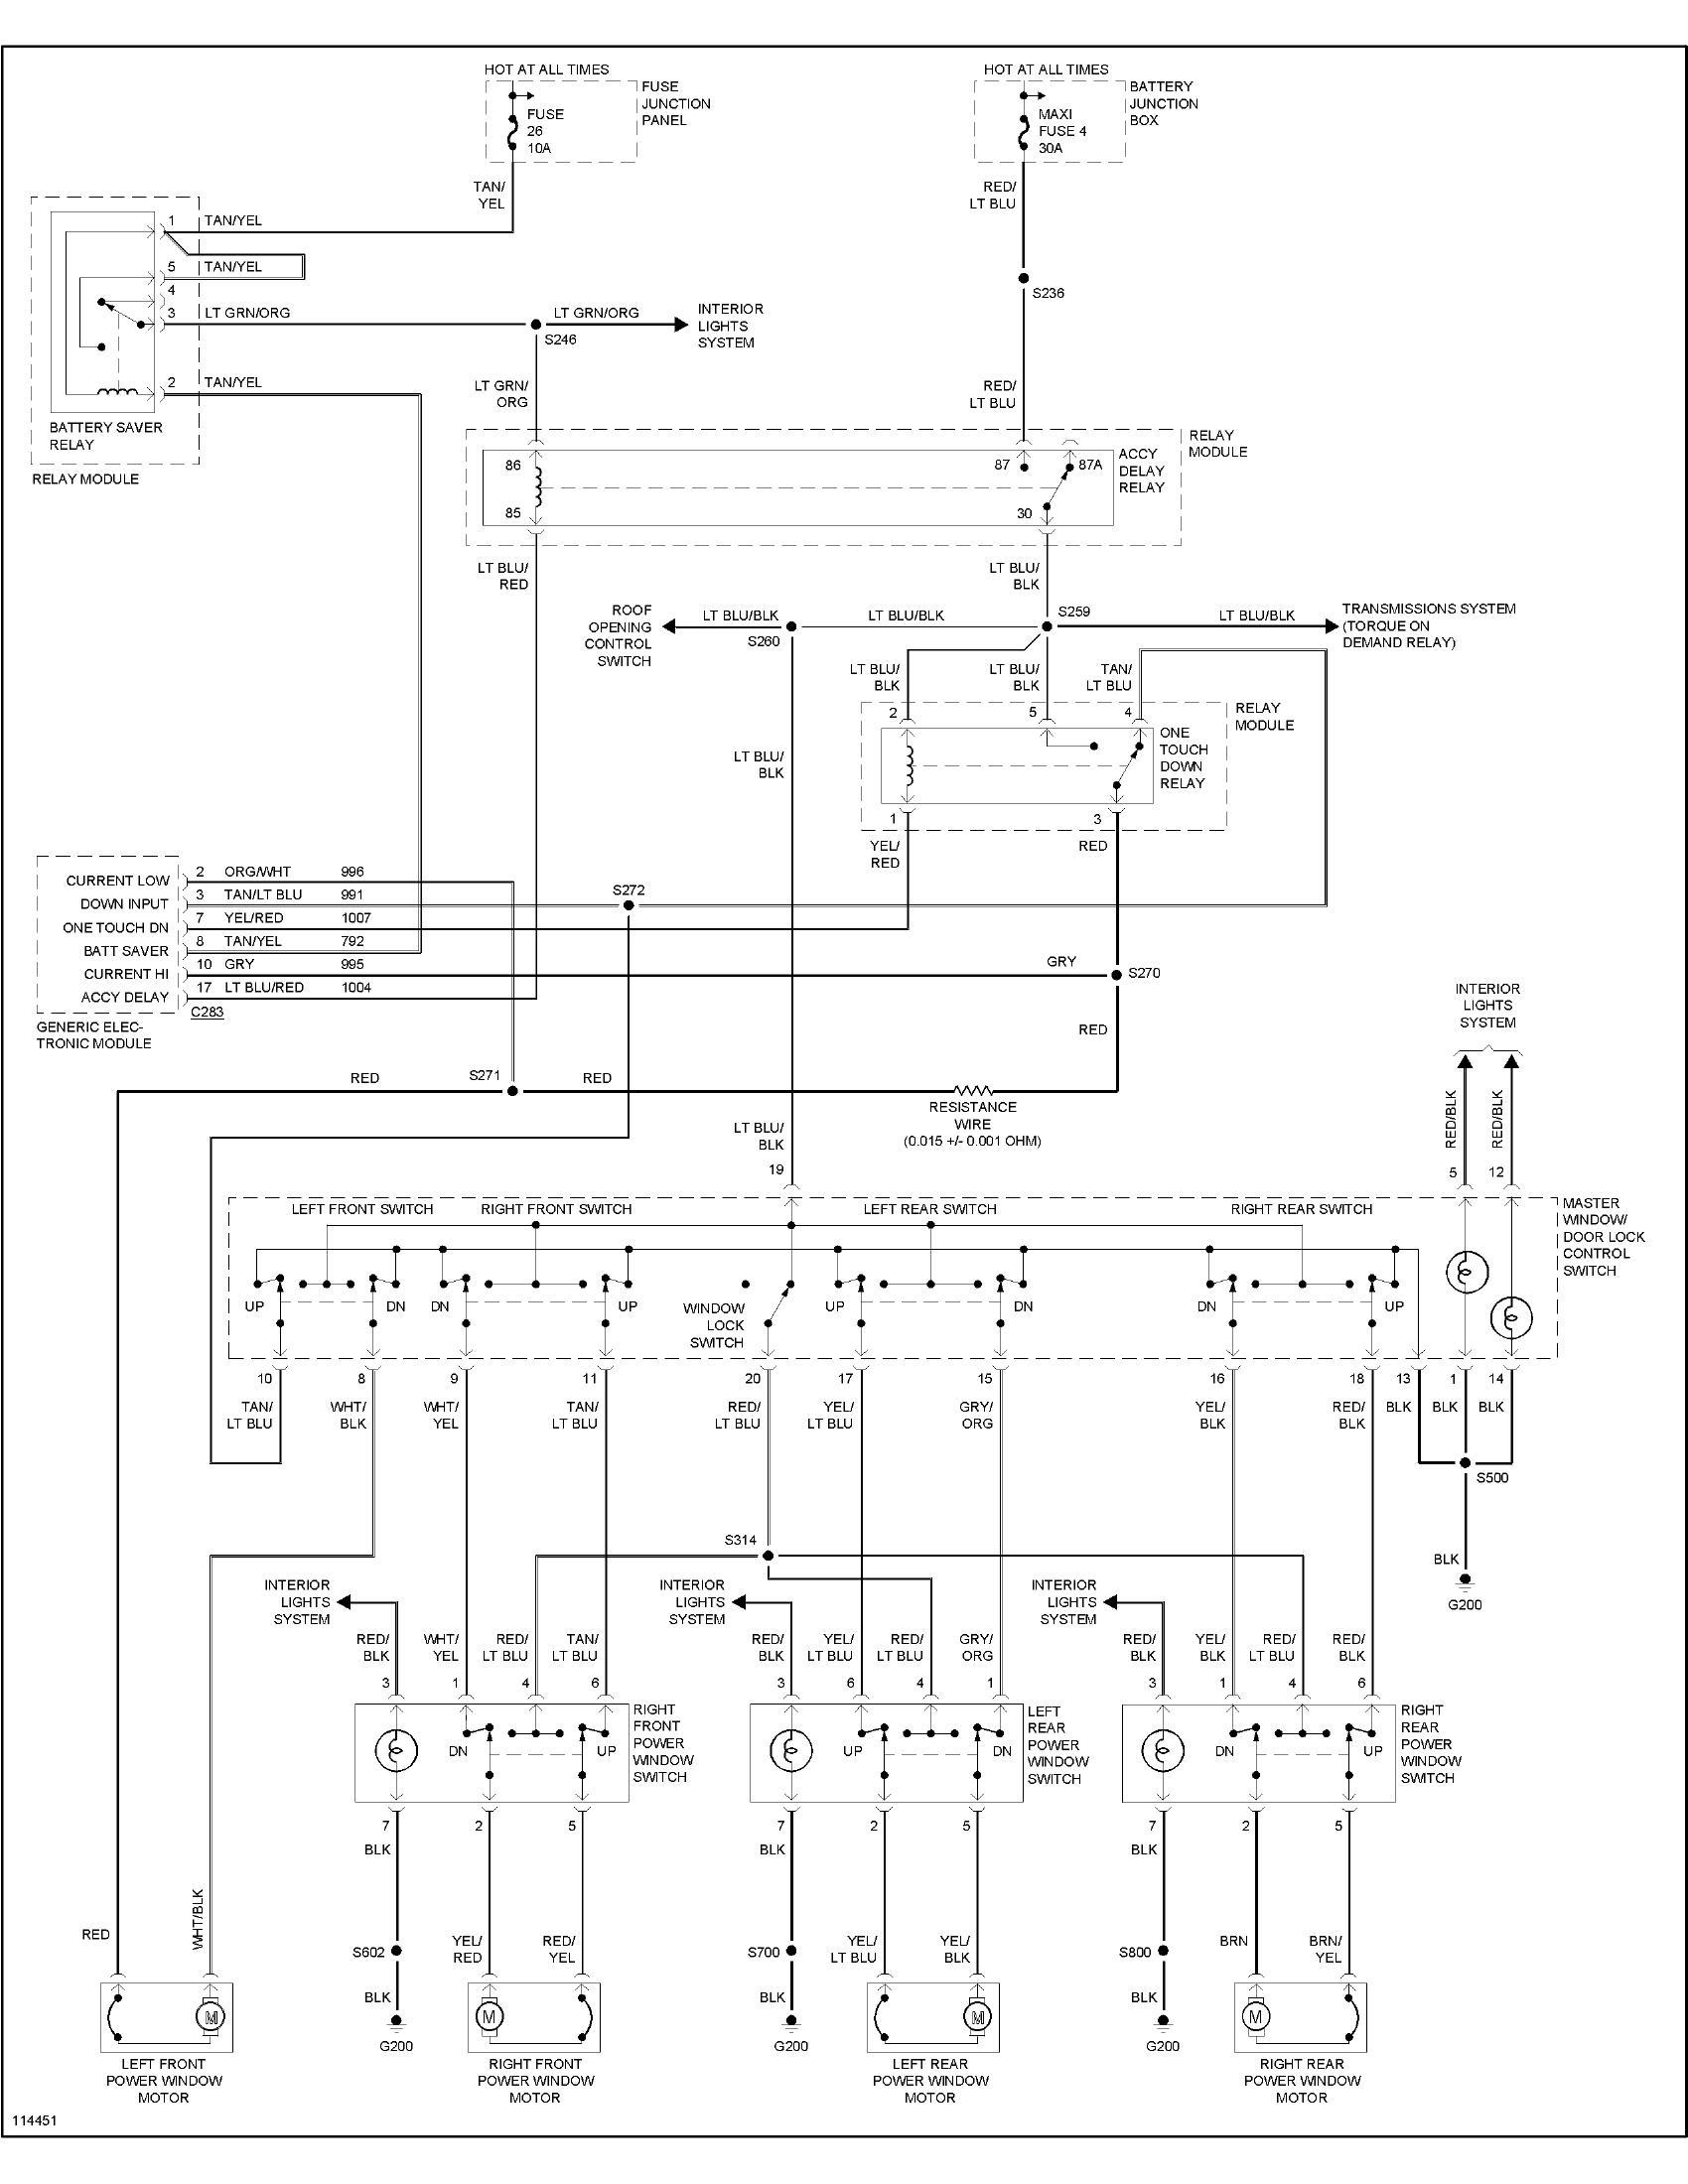 1999 Ford Explorer Wiring Schematics - General Wiring Diagrams equal -  equal.leinivbc.it